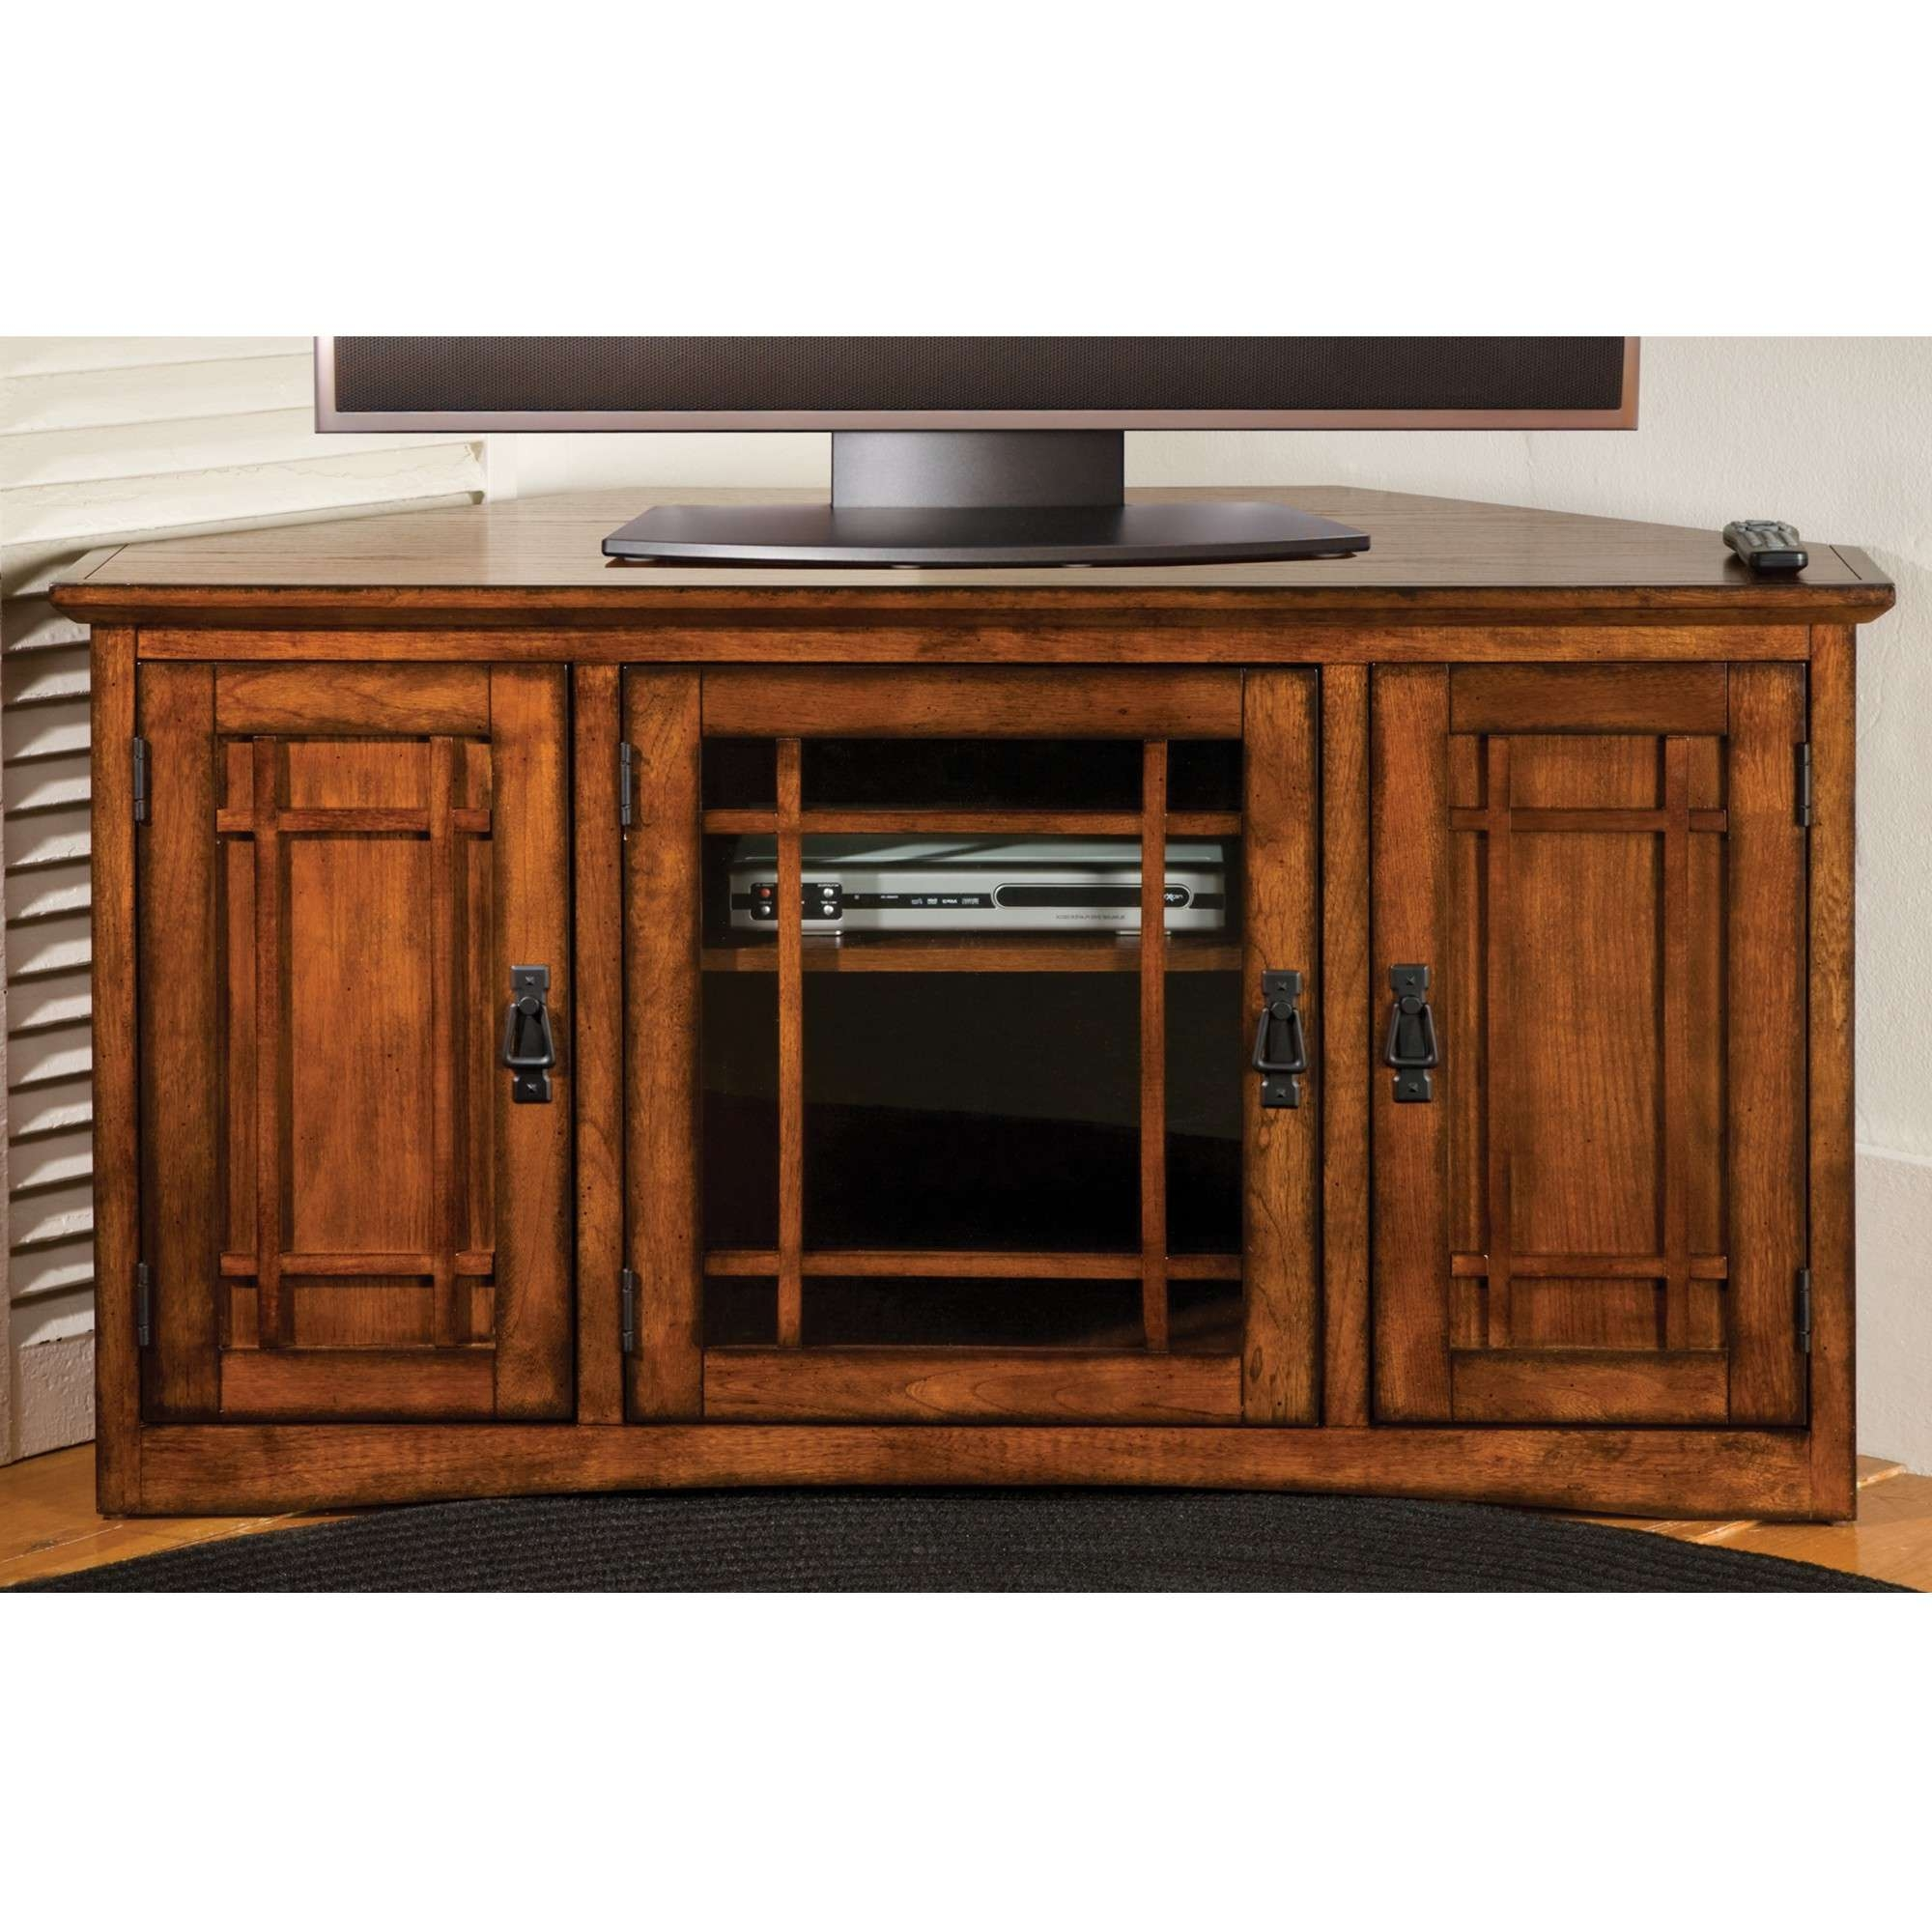 Furniture: Stylish Antique Television Corner Cabinet With Barn Throughout Maple Wood Tv Stands (View 3 of 15)